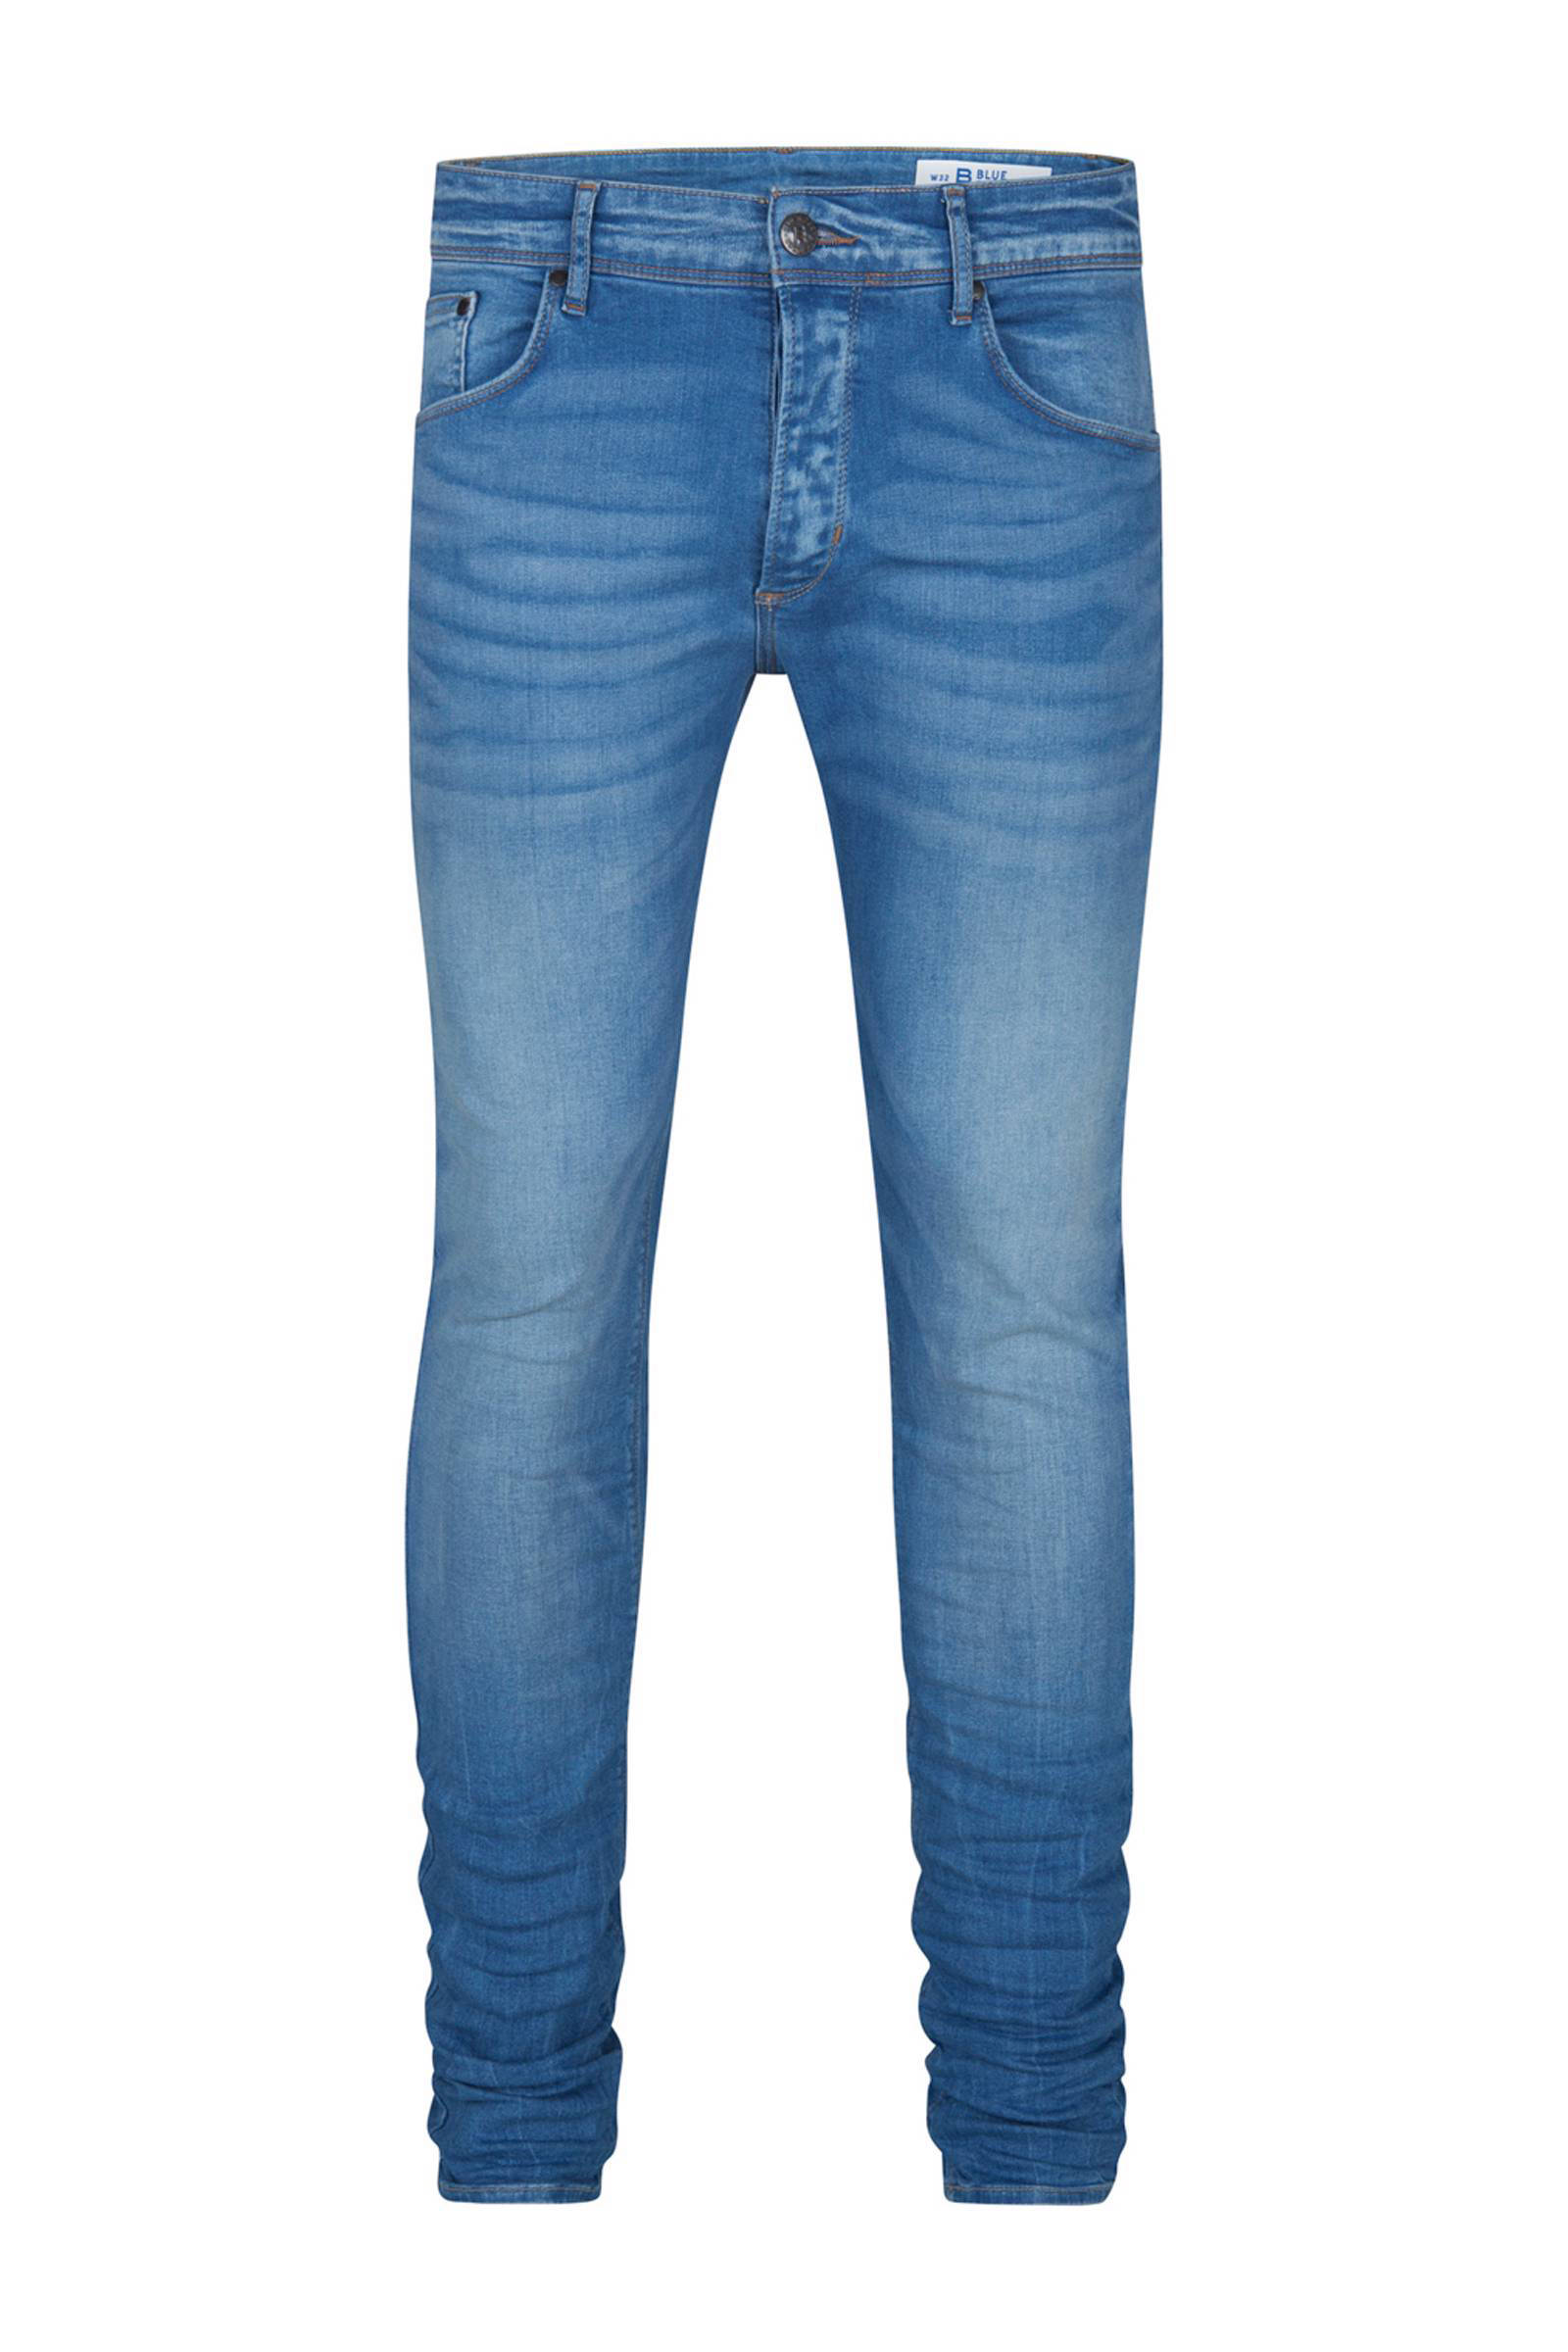 WE Fashion Blue Ridge slim fit super stretch jeans | wehkamp